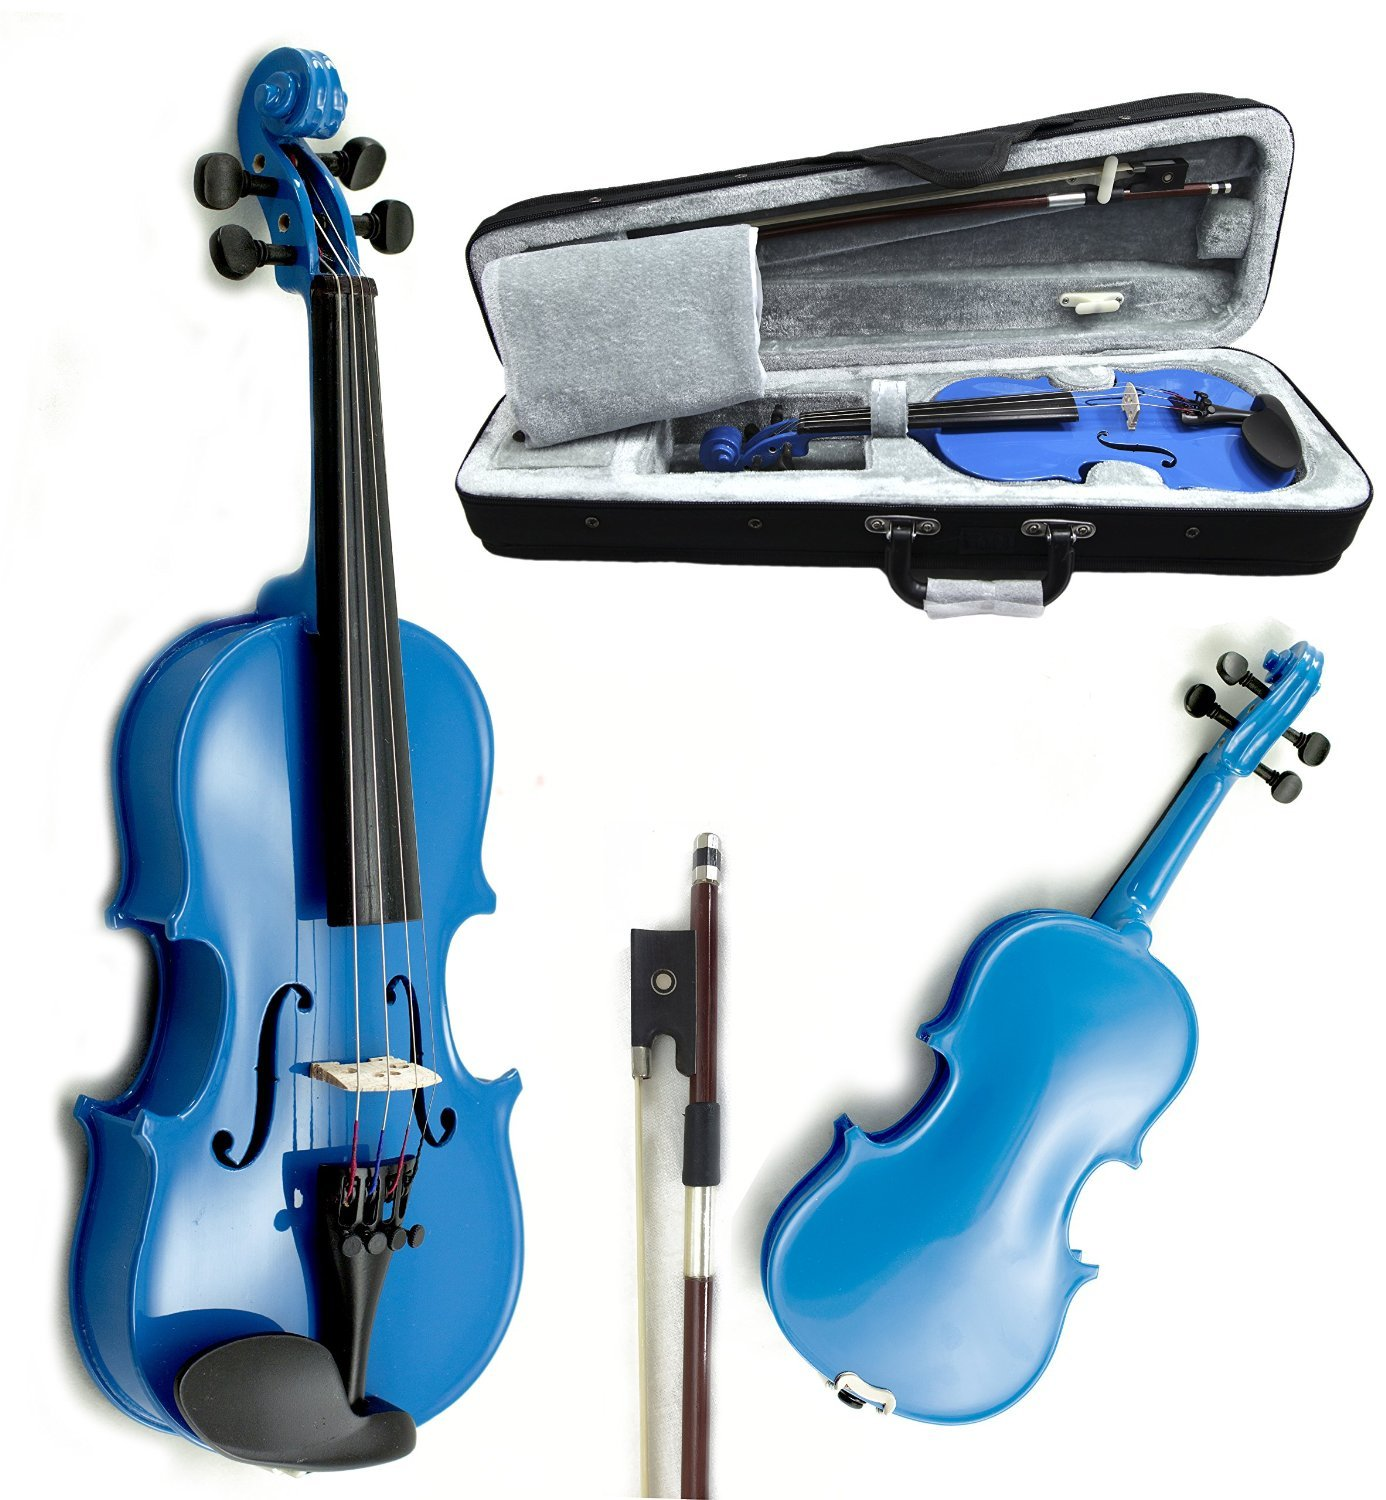 SKY Wood 1/16 Size Kid Violin with Lightweight Case, Brazilwood Bow and Rosin Sky Blue Color by Sky